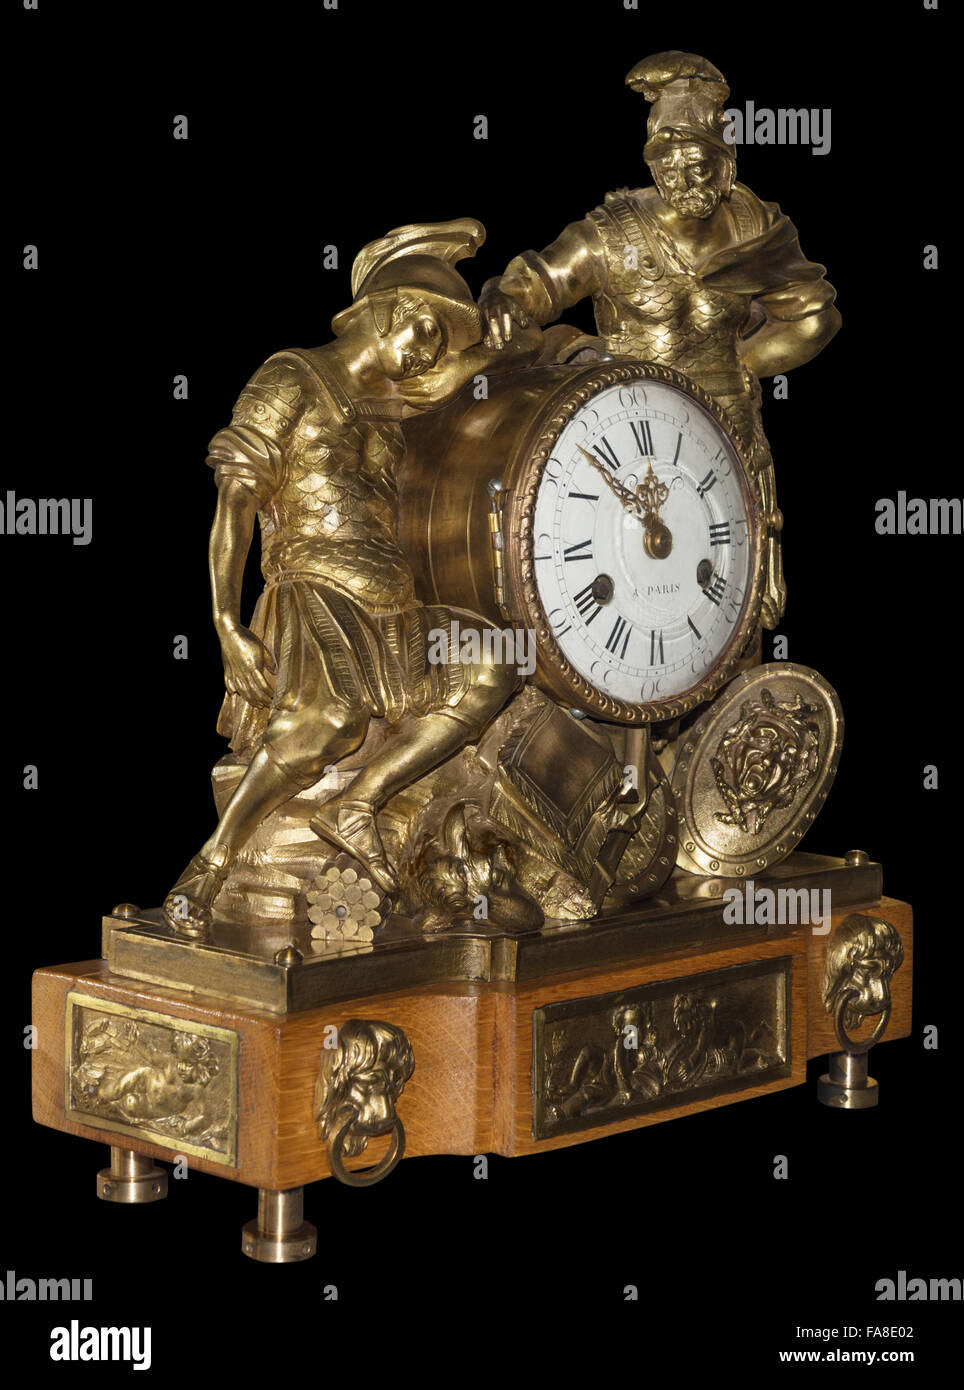 Isolated antique clock - Stock Image